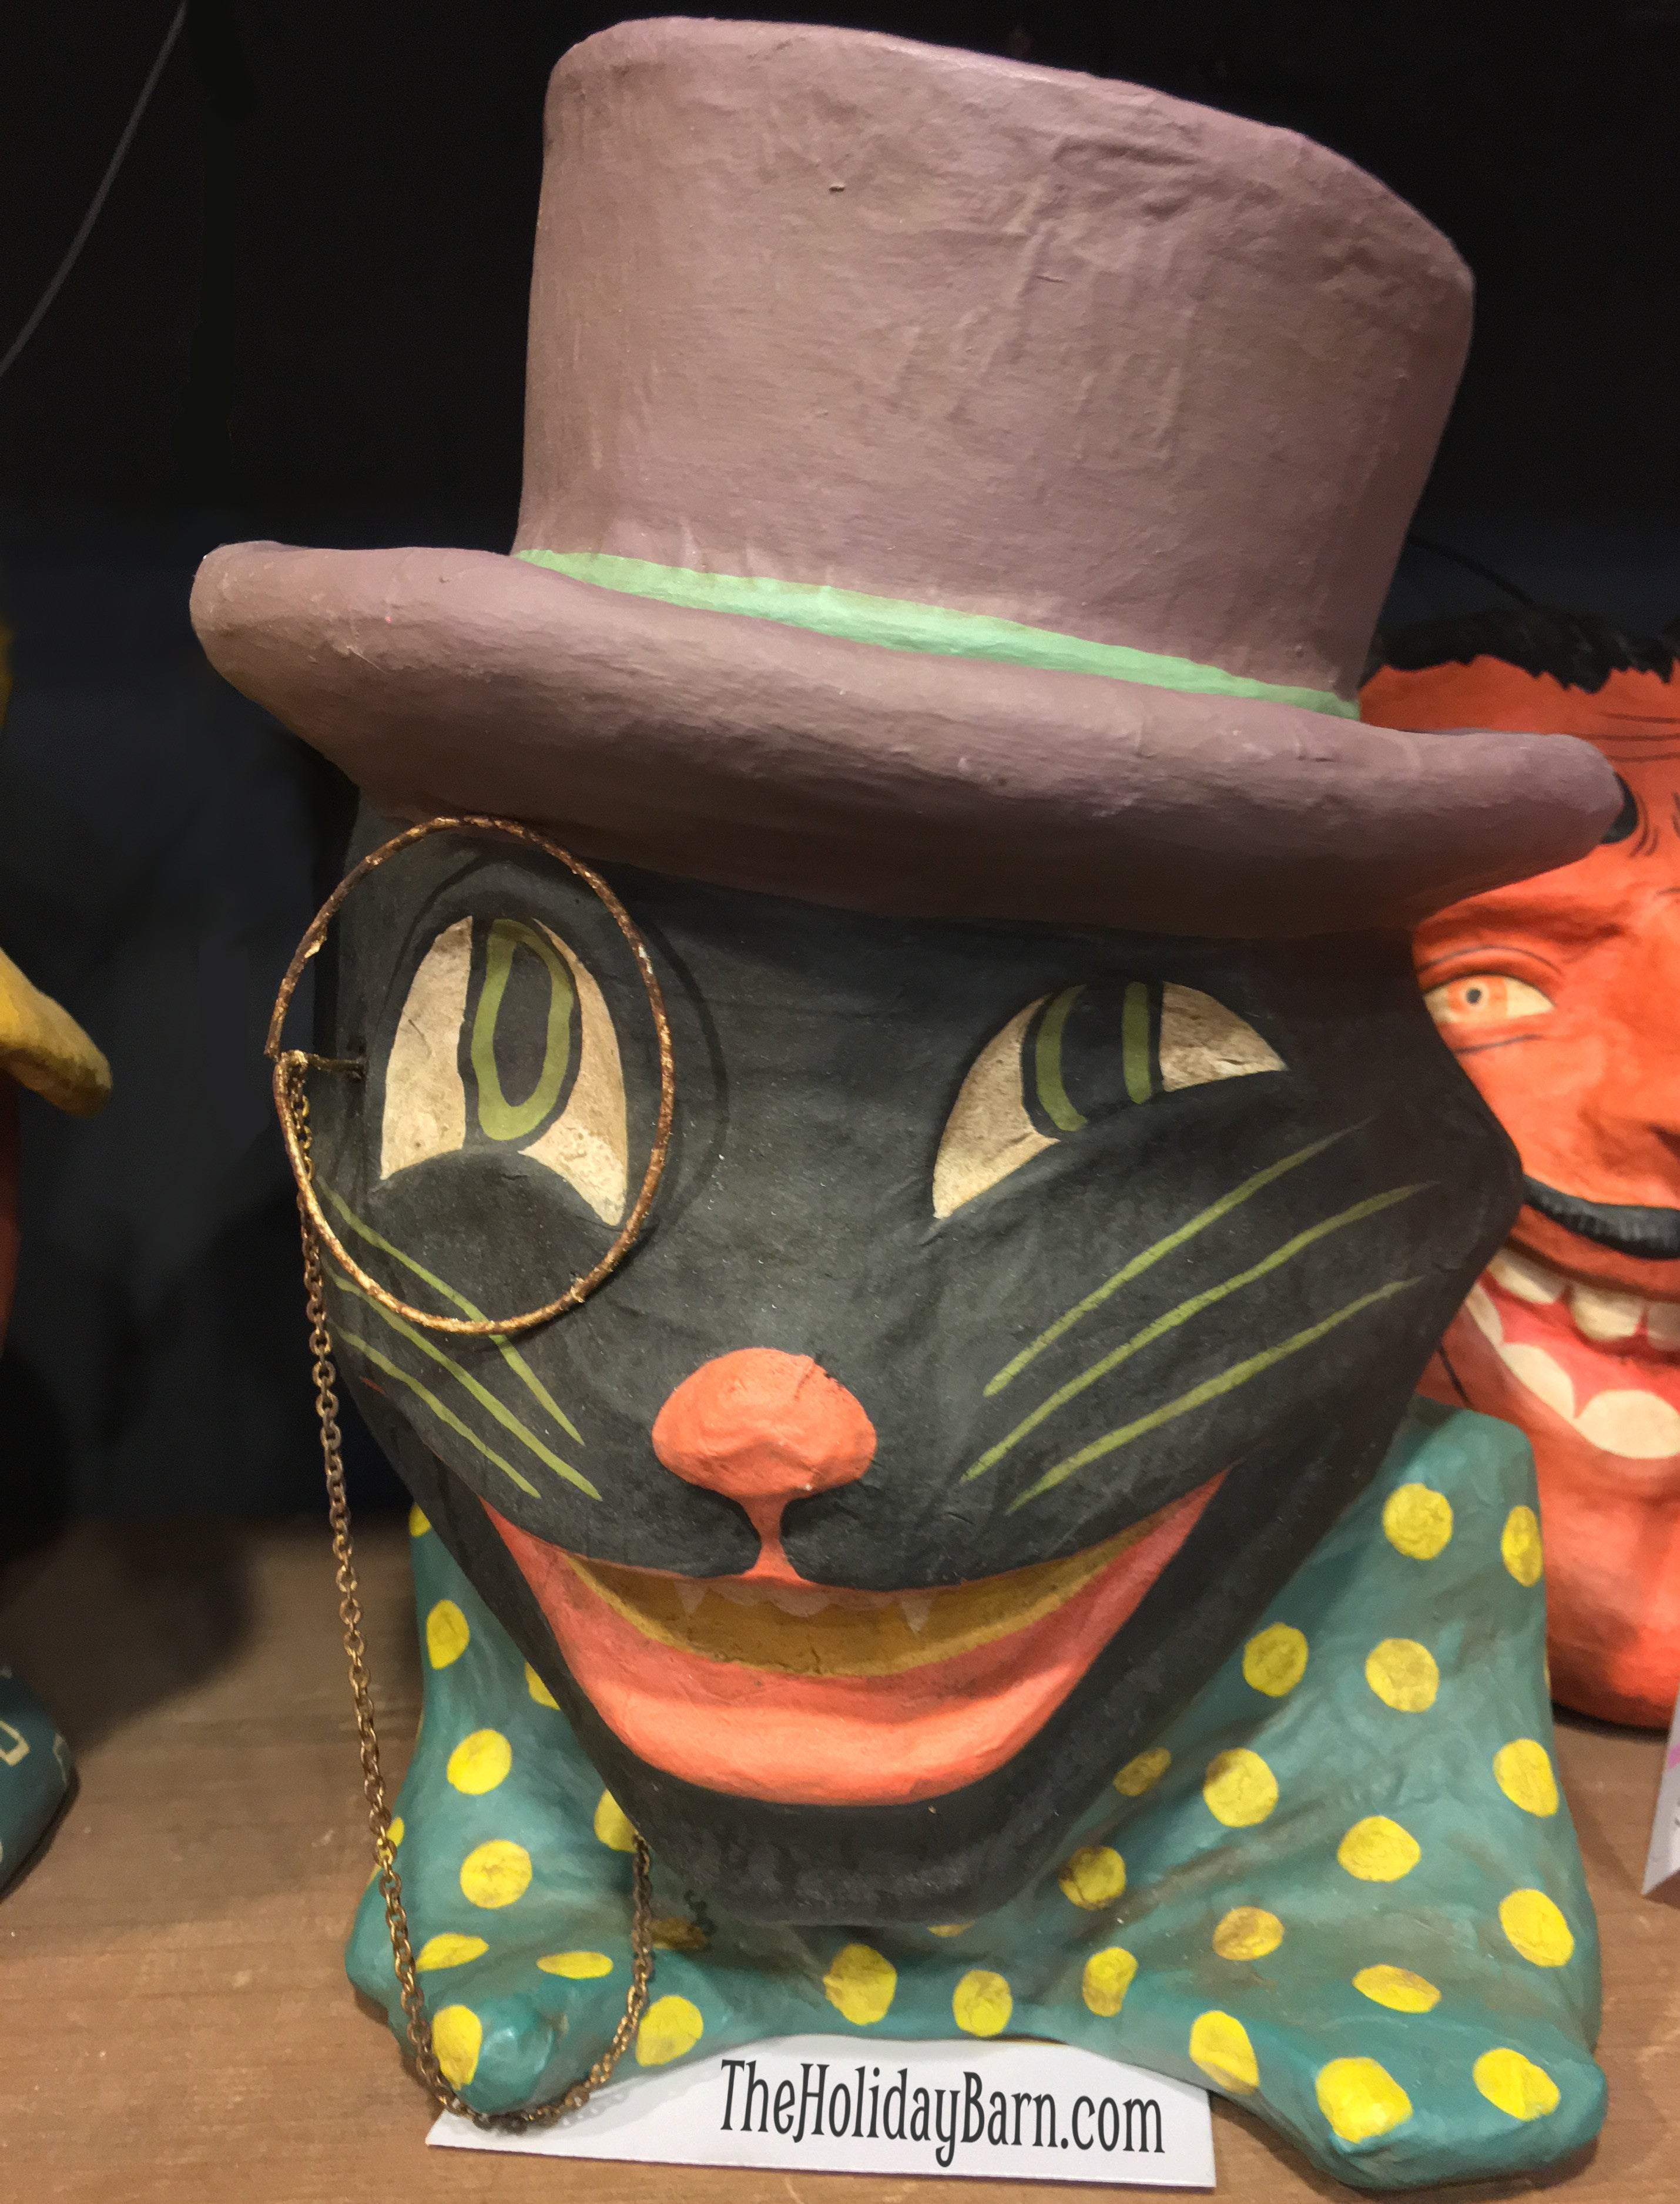 Black Cat with Monocle, Bowtie & Top Hat Paper Mache Candy Bucket